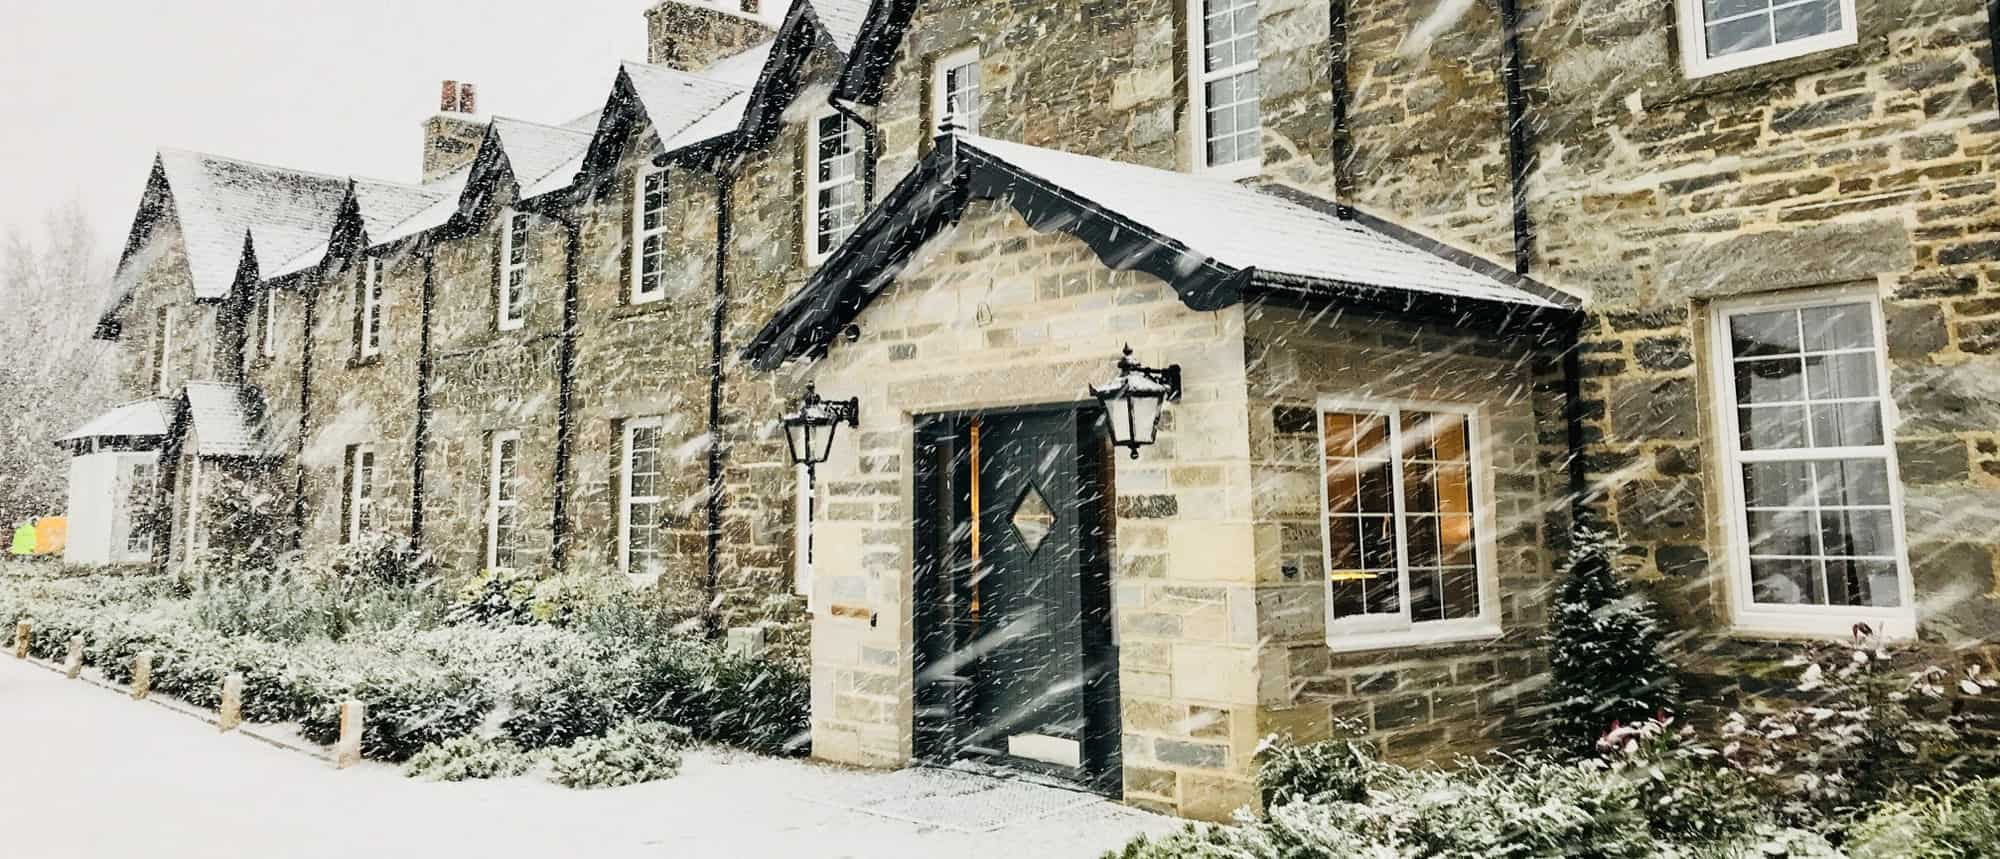 Highland Hogmanay 2019: Celebrate the New Year Scottish Style with the Five-Star Dunalastair Hotel Suites